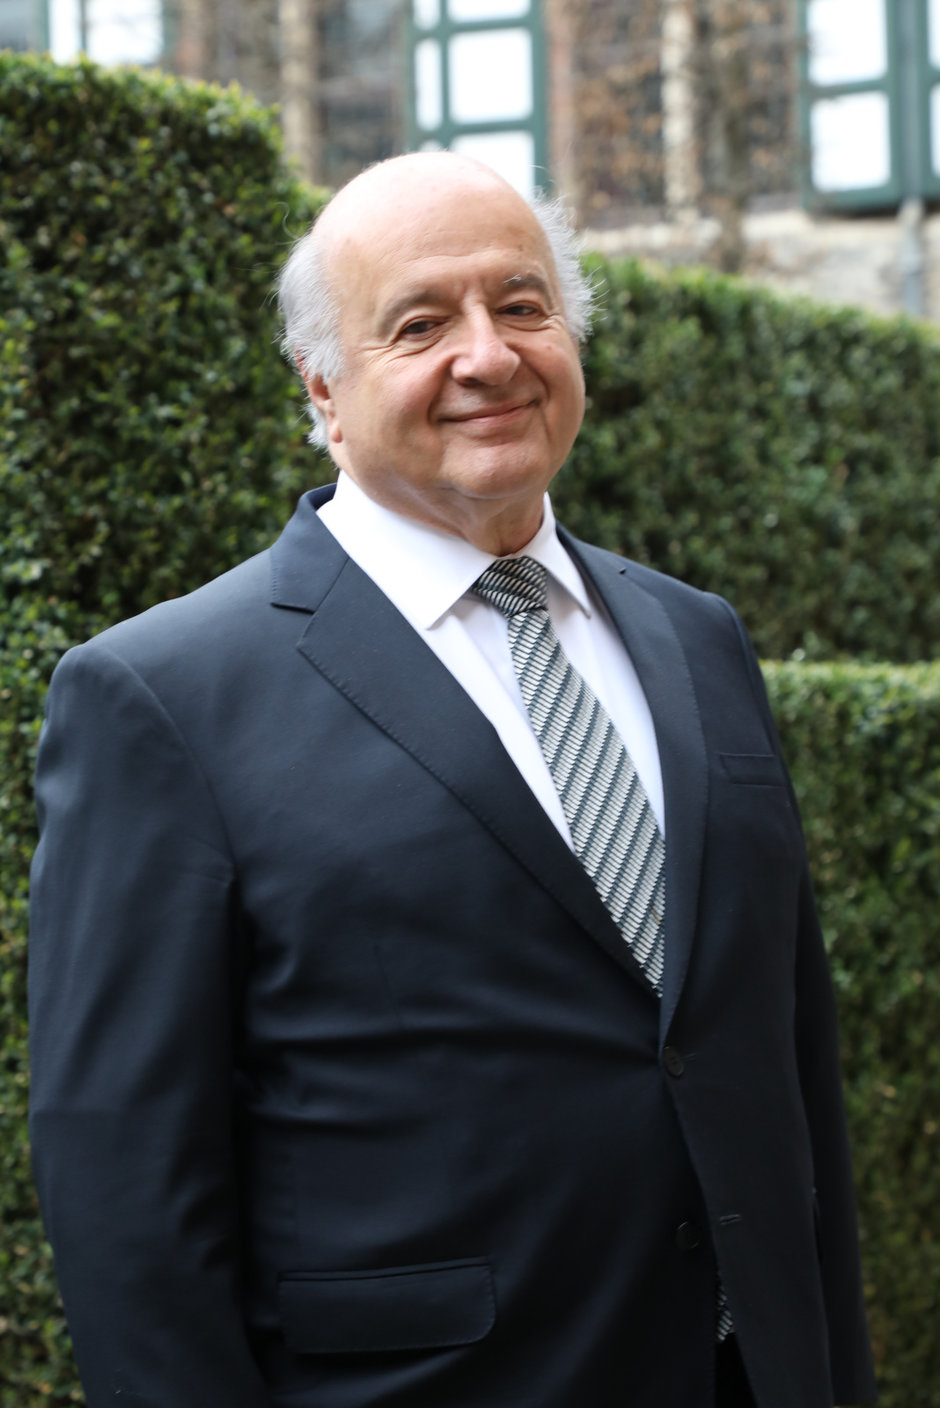 Eredoctor Hernando de Soto (Institute for Liberty and Democracy, Lima)